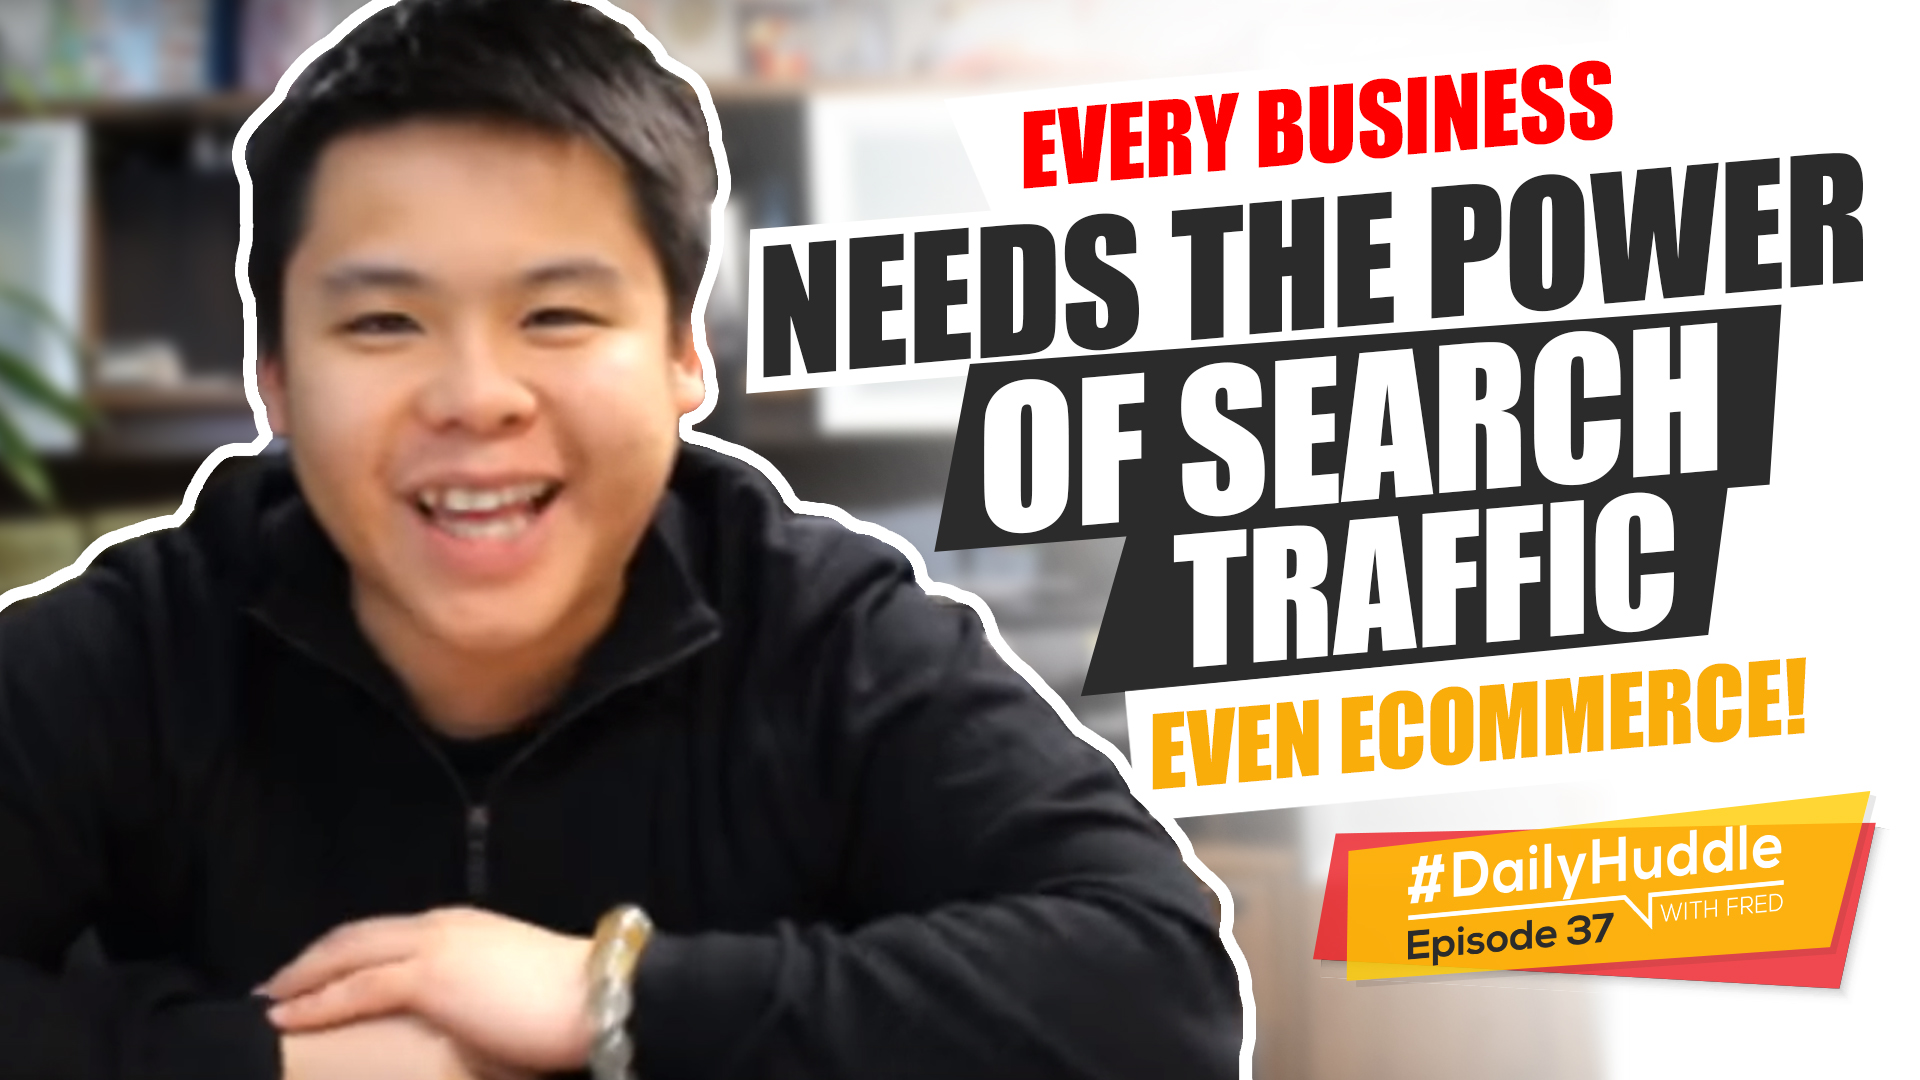 Daily Huddle - Ep 37 | EVERY Business Needs The Power Of Search Traffic - Even eCommerce!